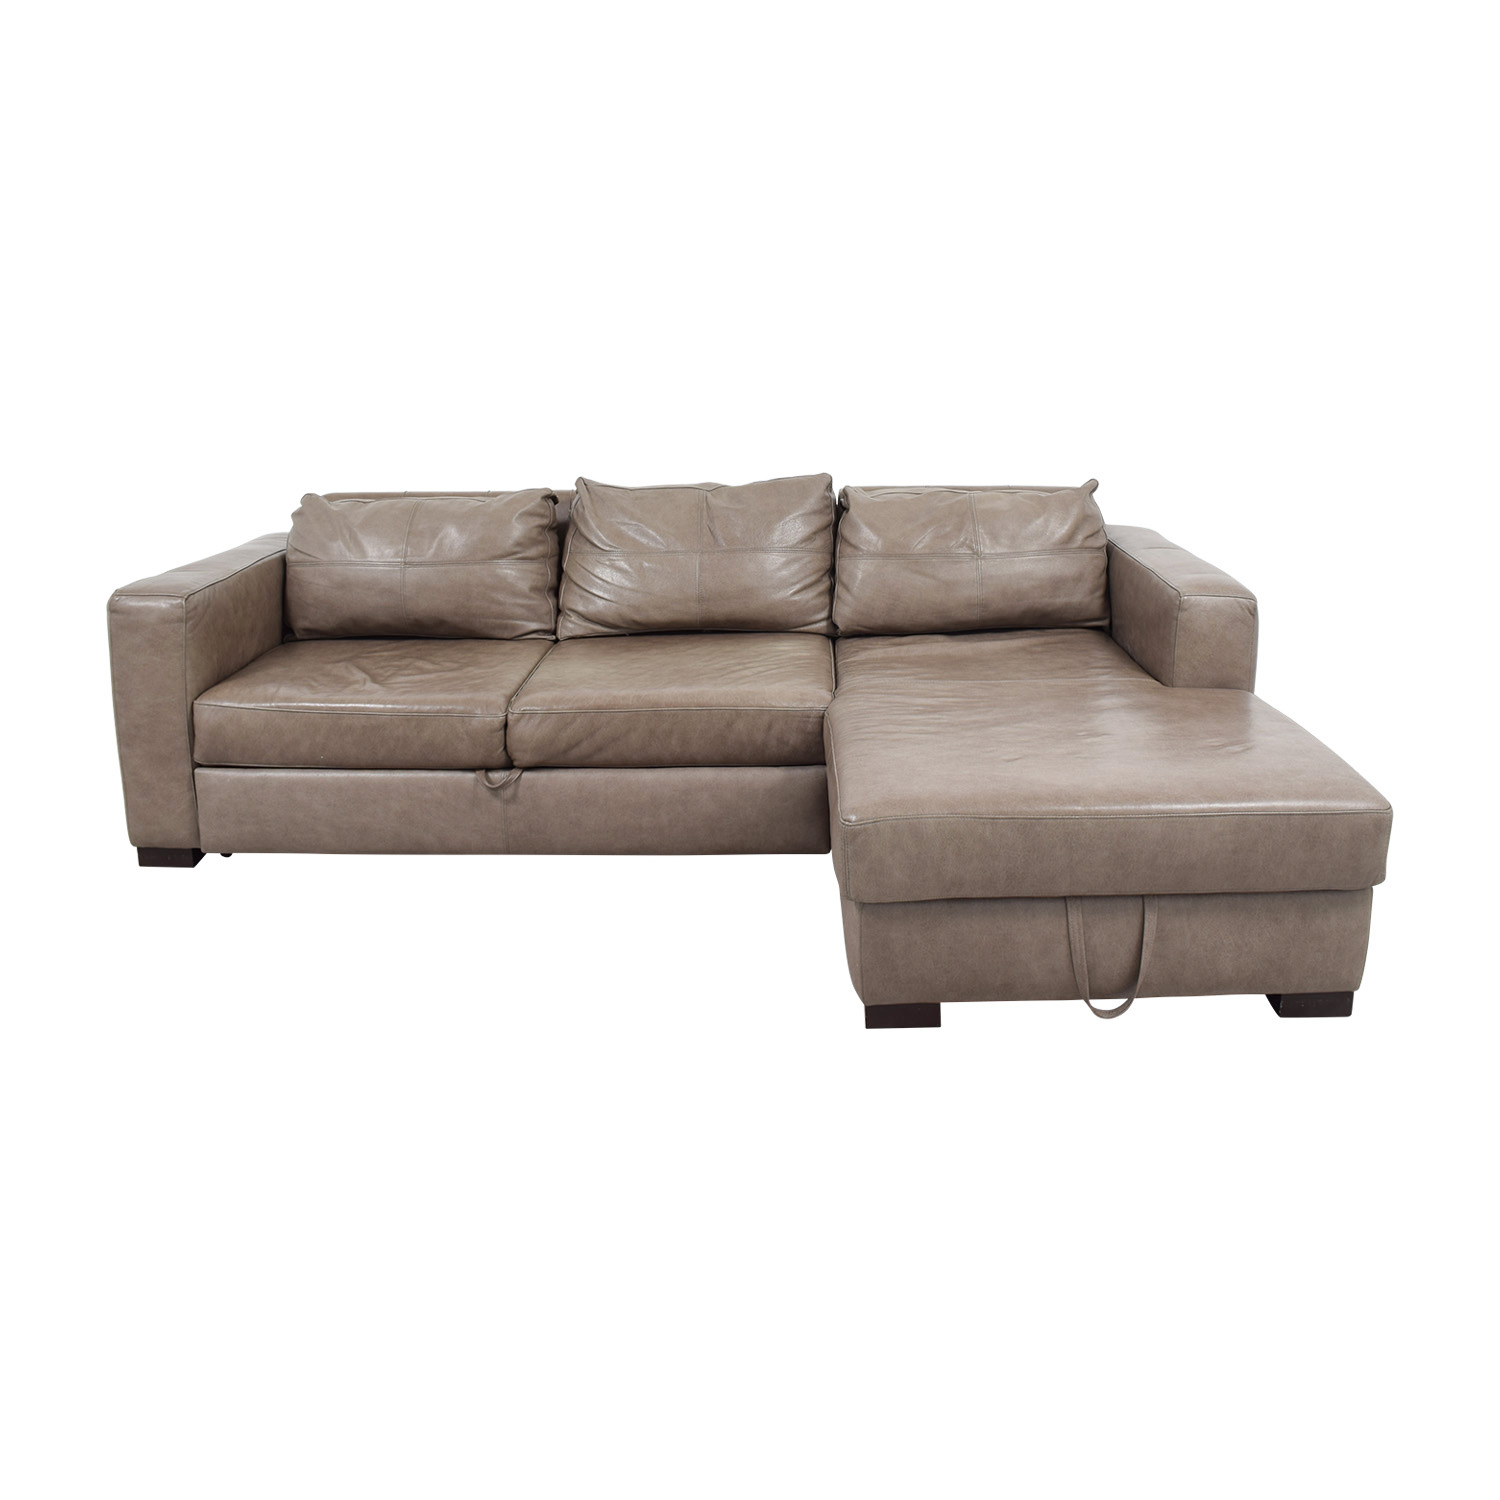 who makes arhaus leather sofas scs brisbane 3 seater sofa bed buy quality used furniture